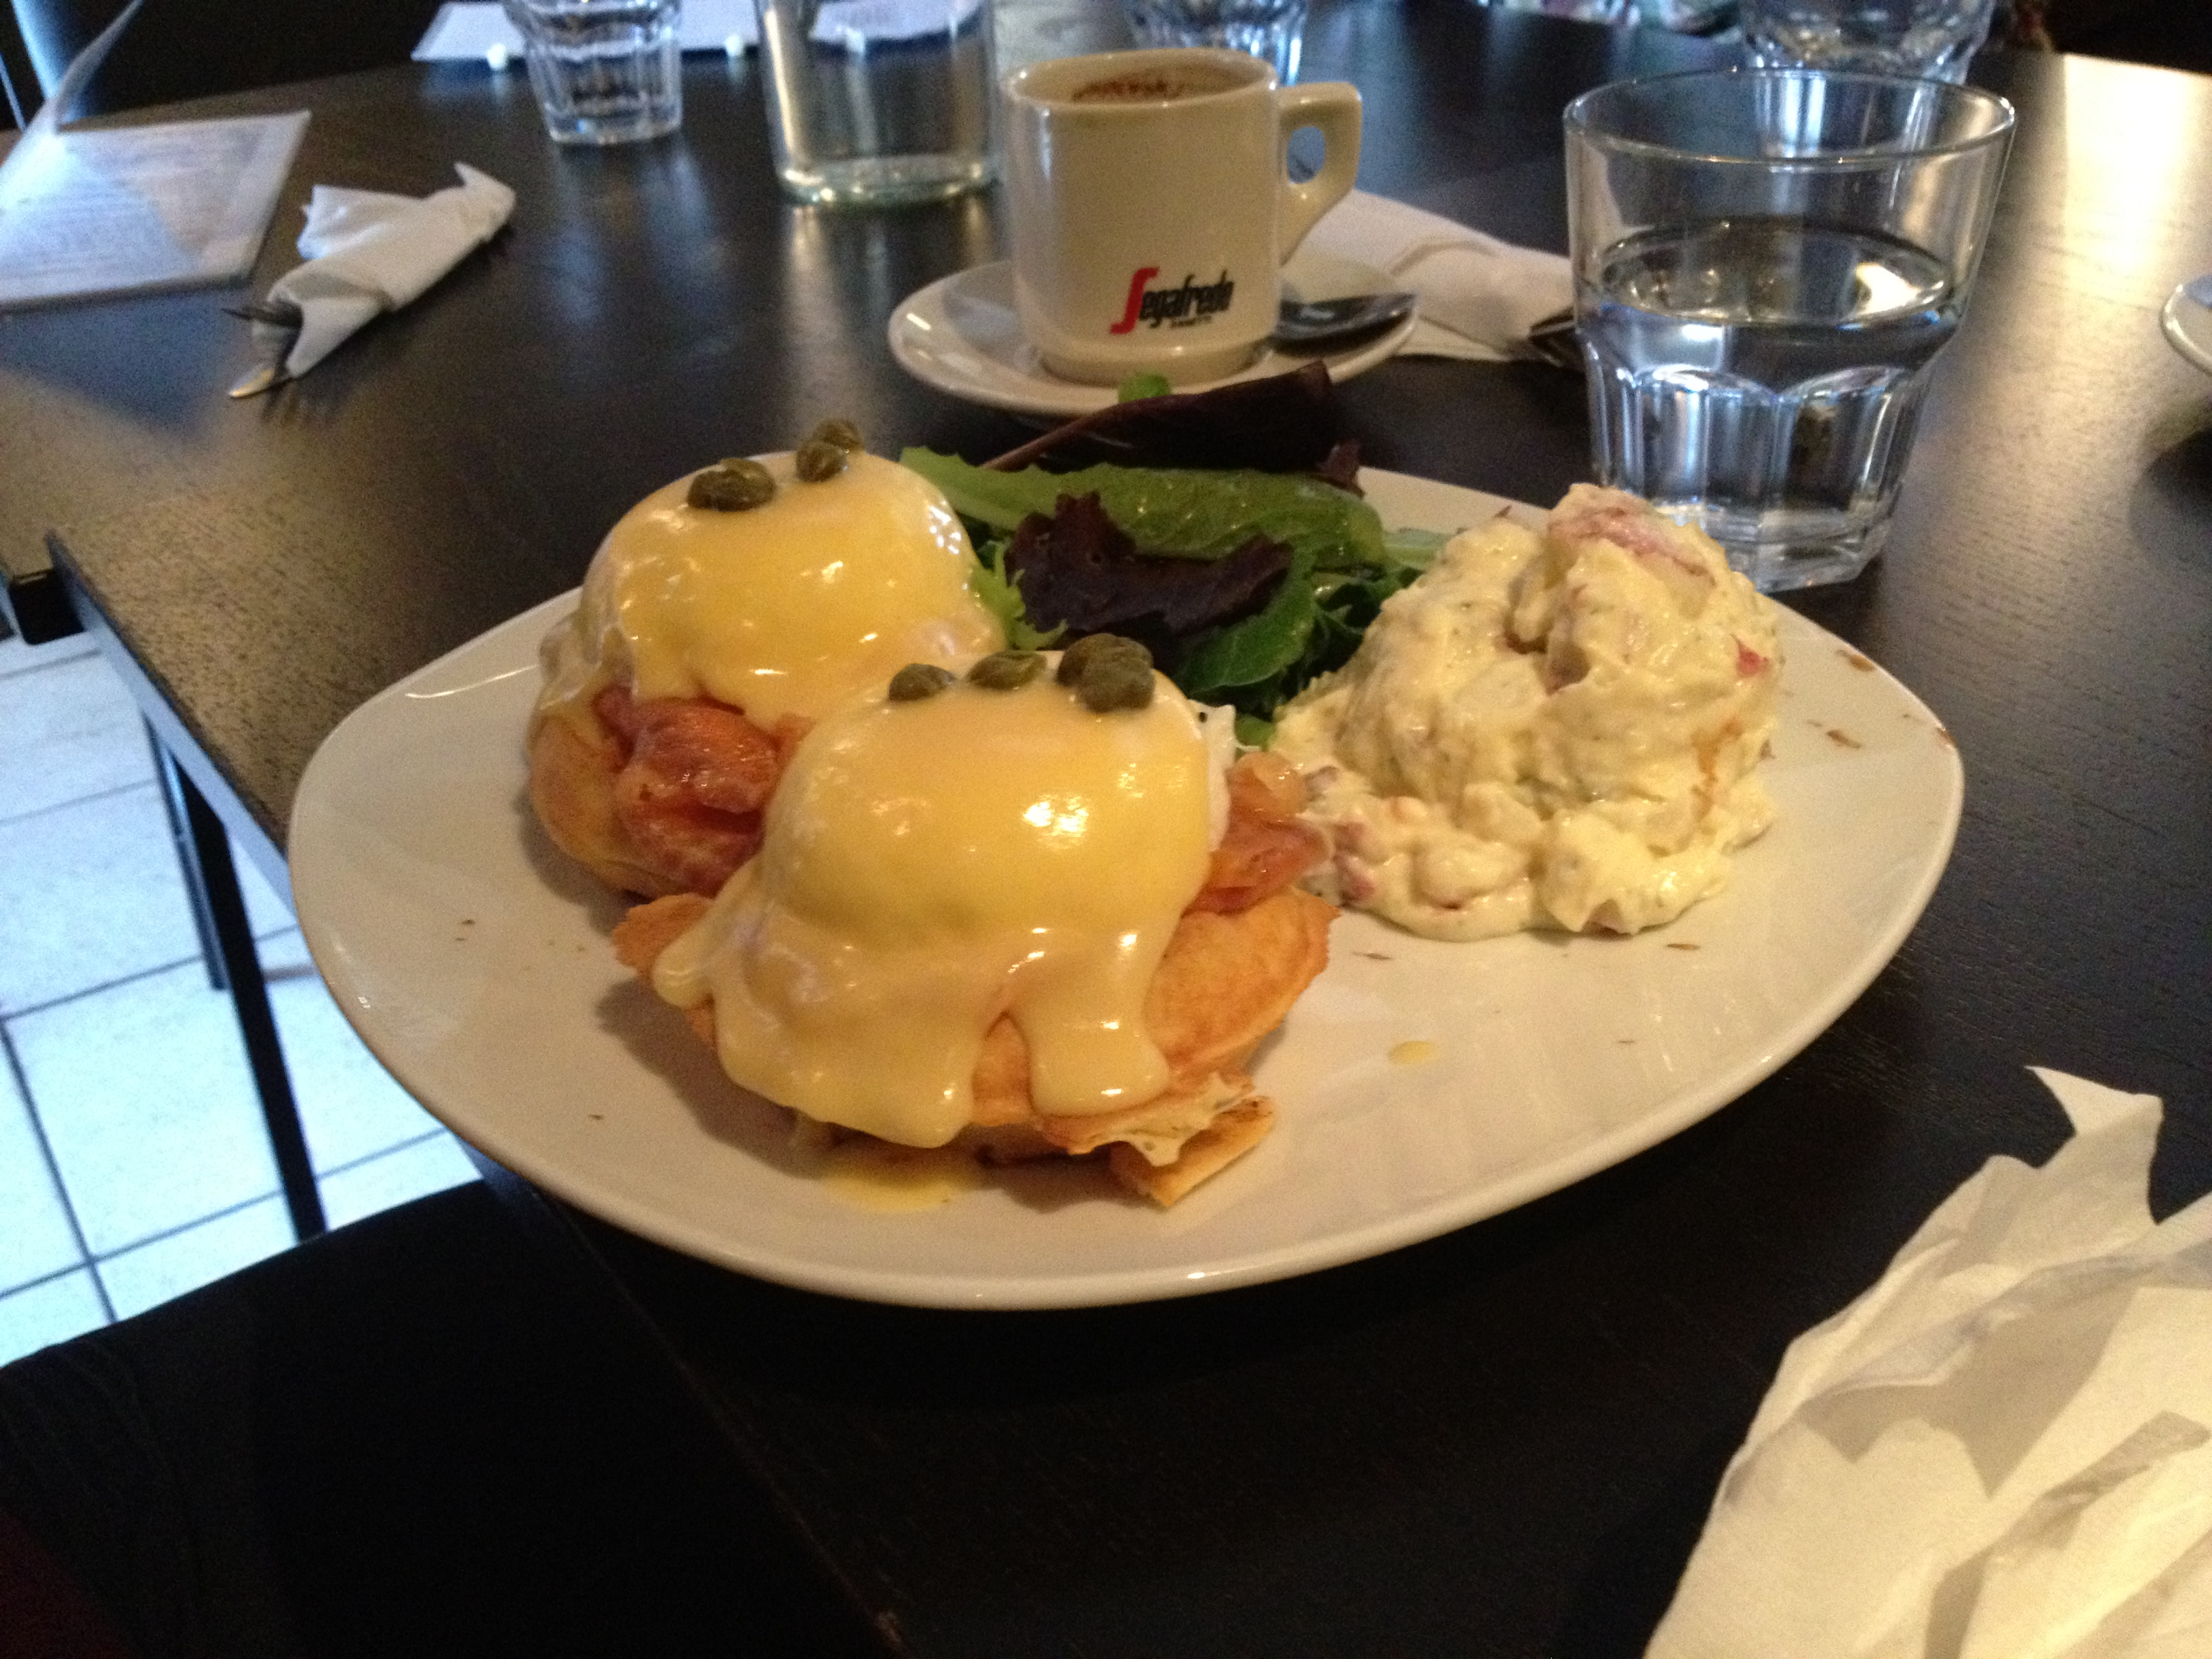 Salmon Eggs Benny with Potato Salad on the side